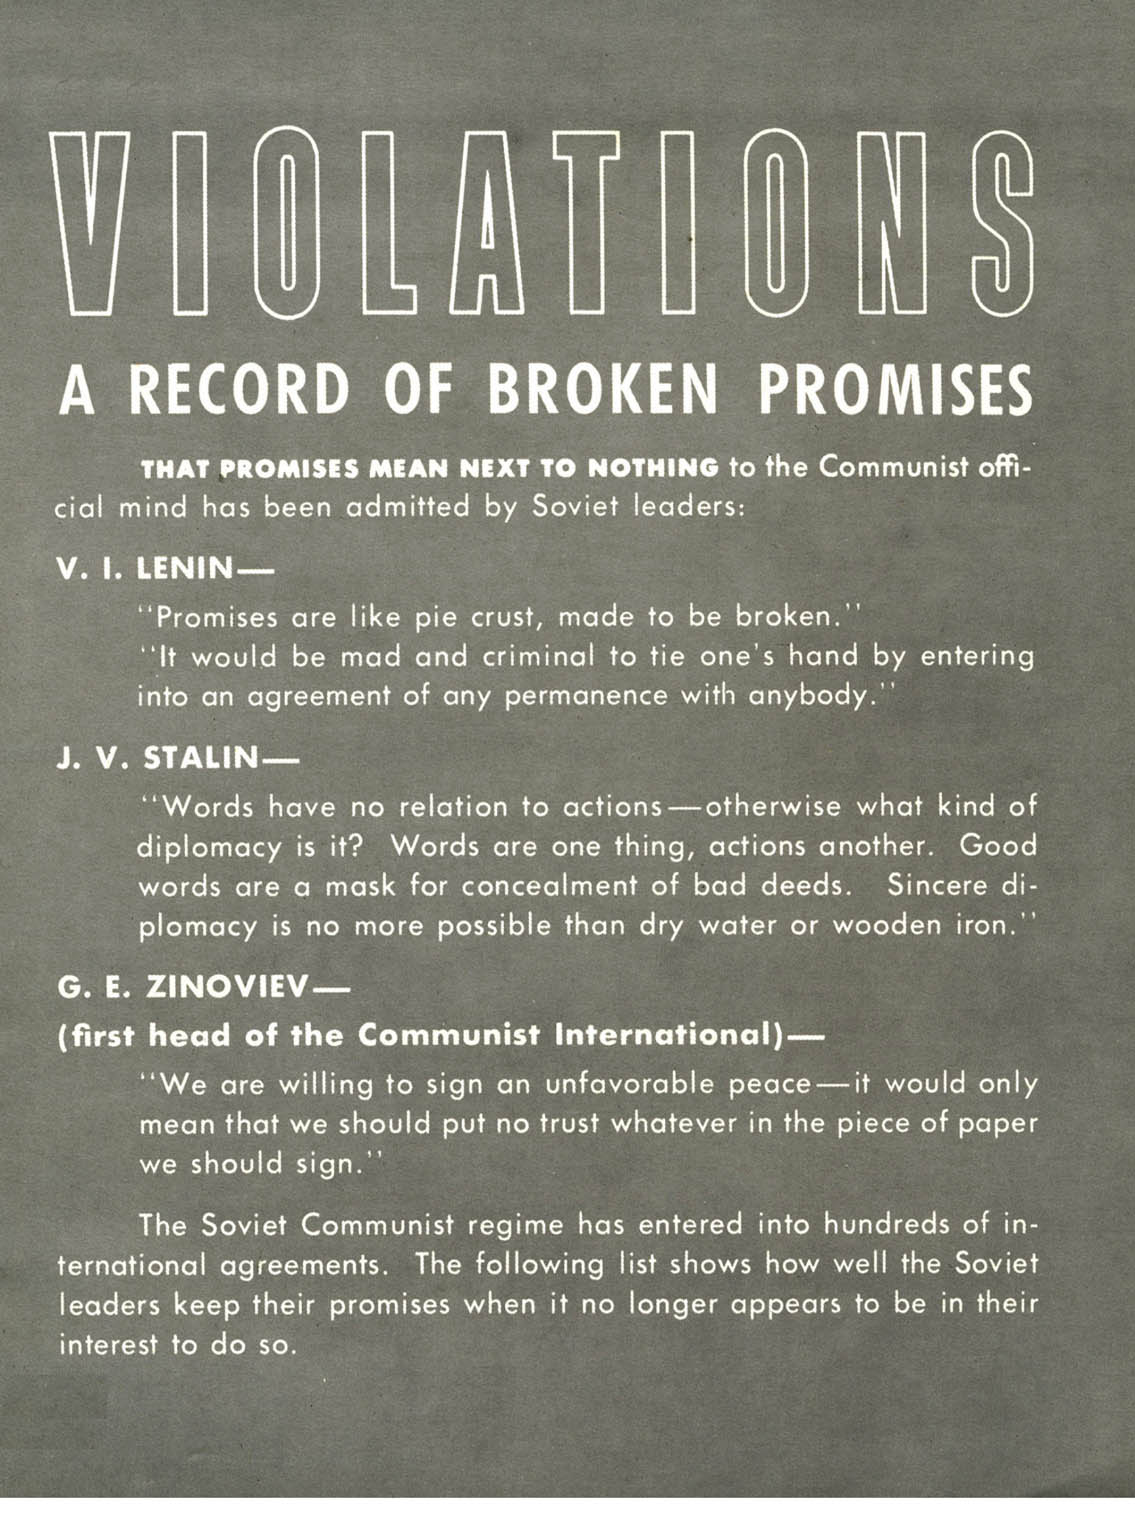 Soviet Treaty Violations (U.S. Dept. of Defense, 1962)